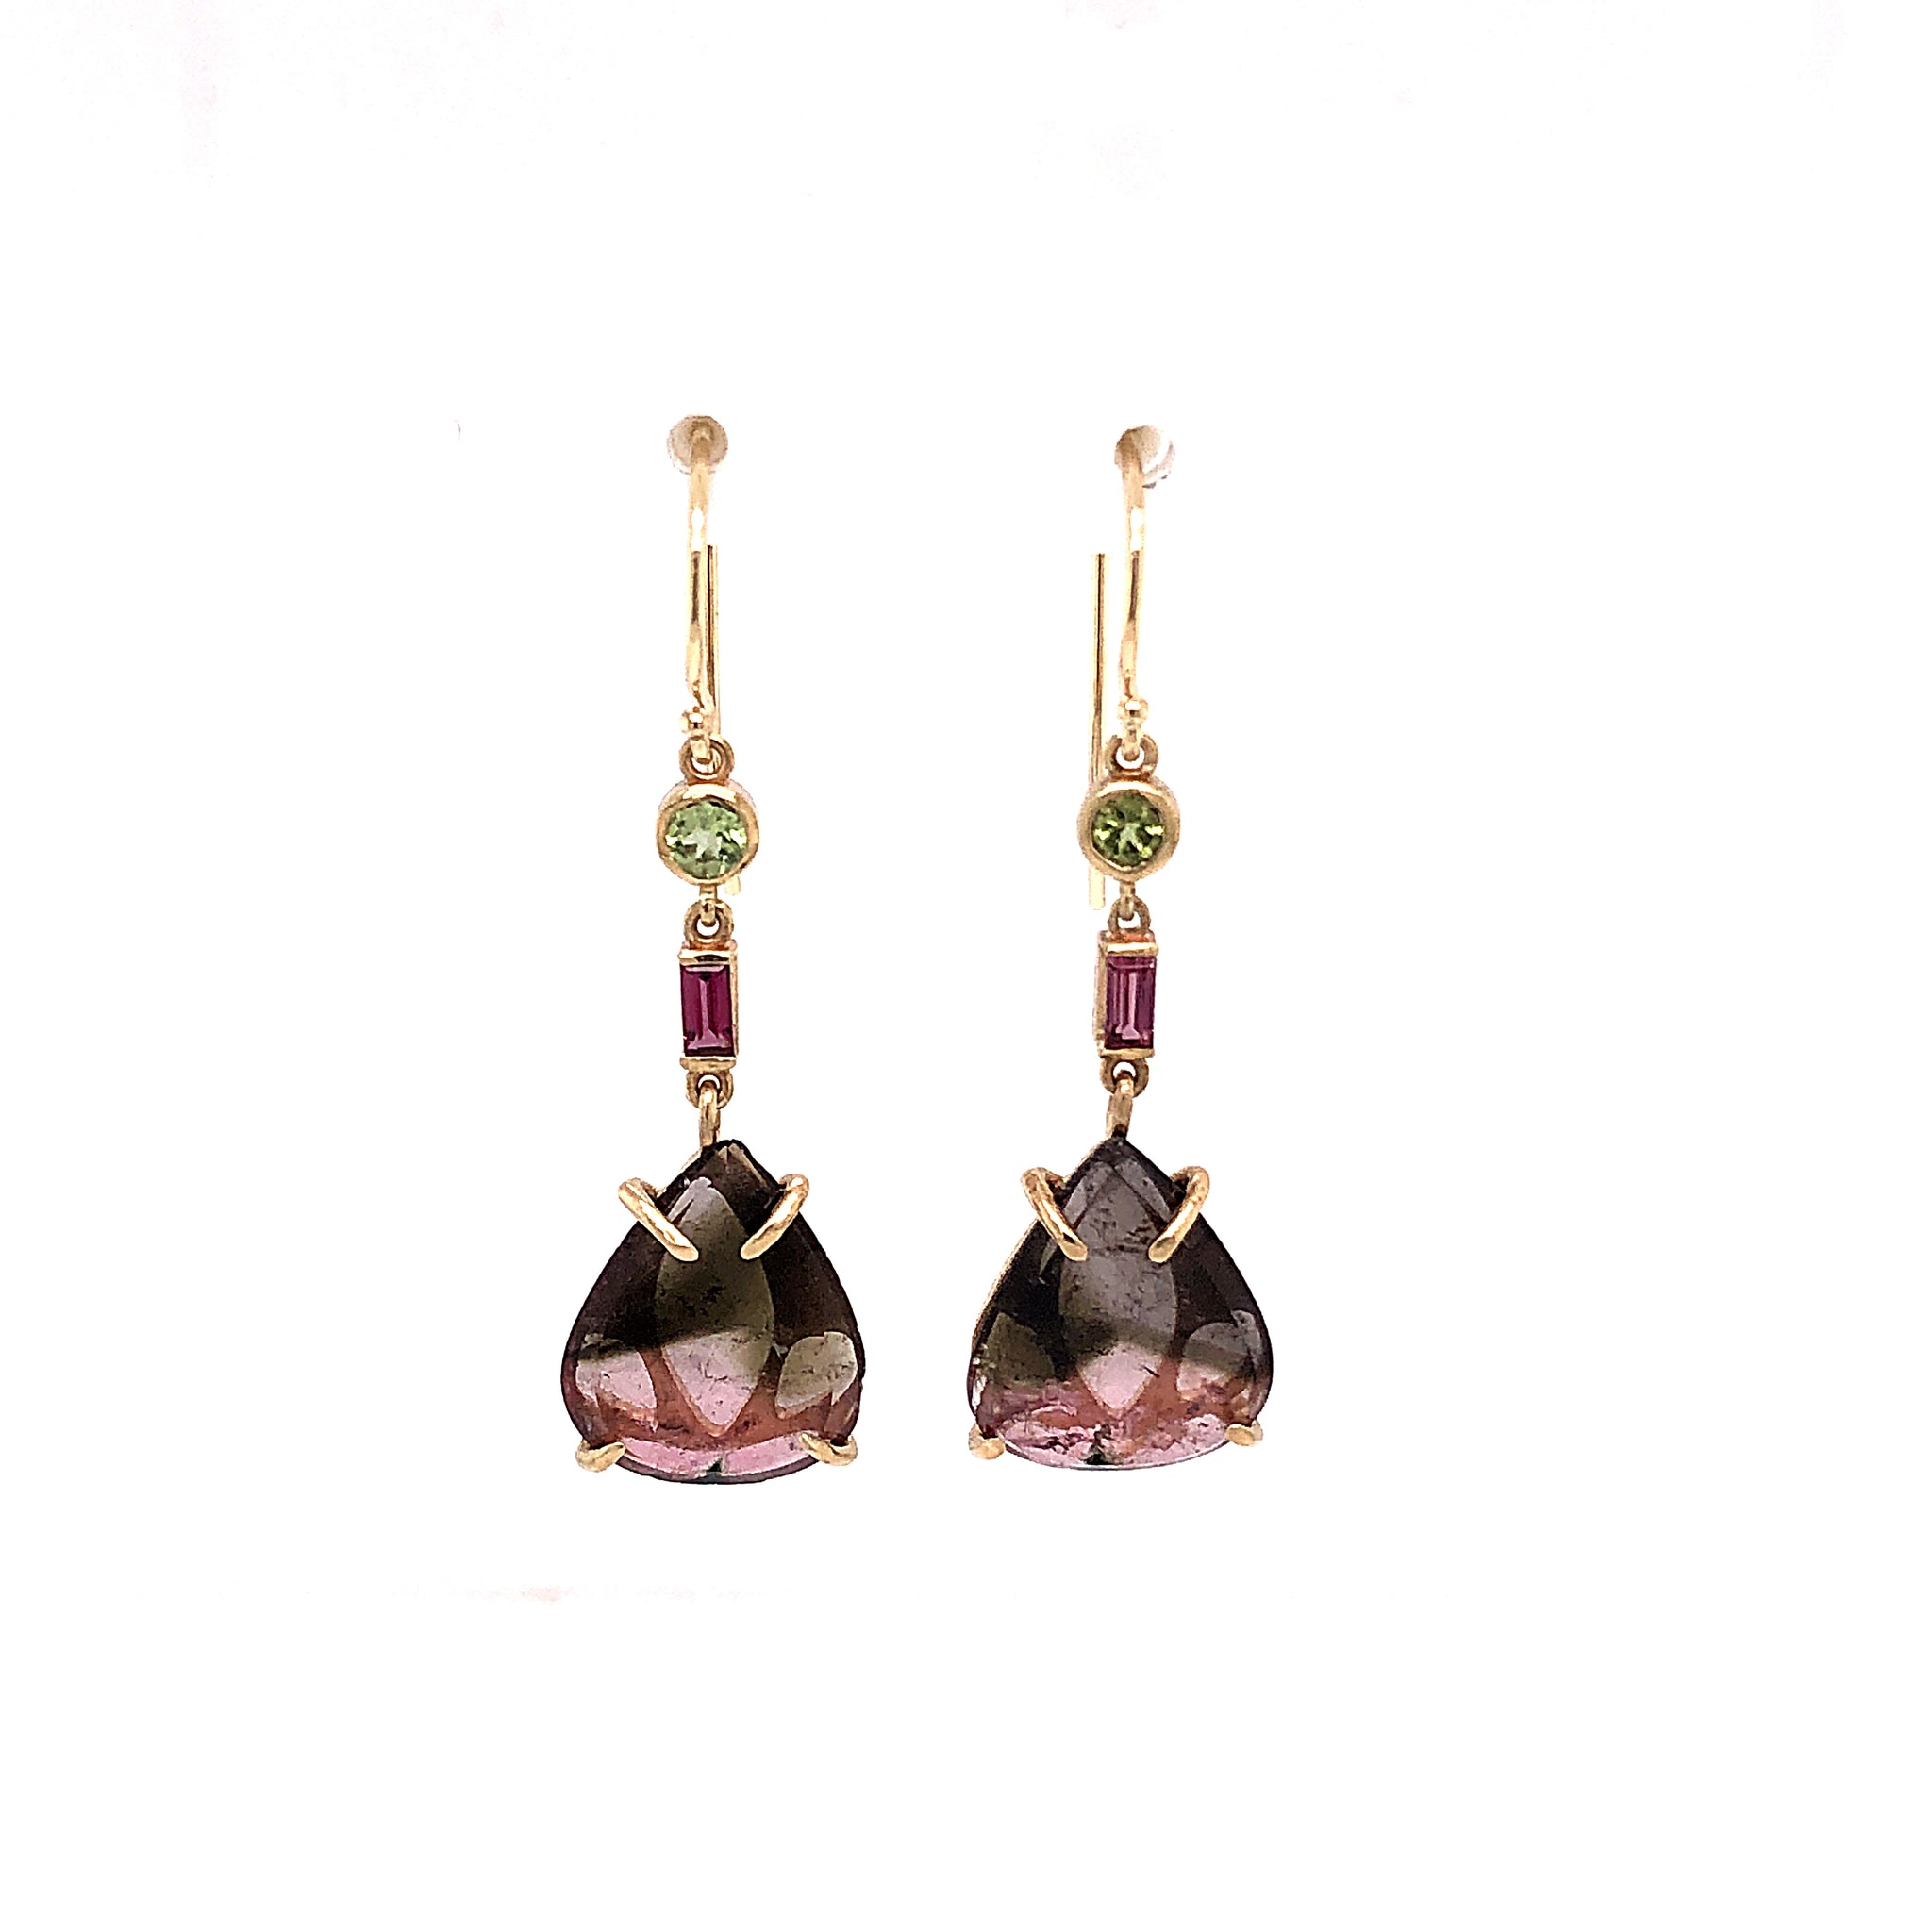 Tourmaline and Peridot Earrings, Handmade in 14k Gold (One-of-a-Kind)